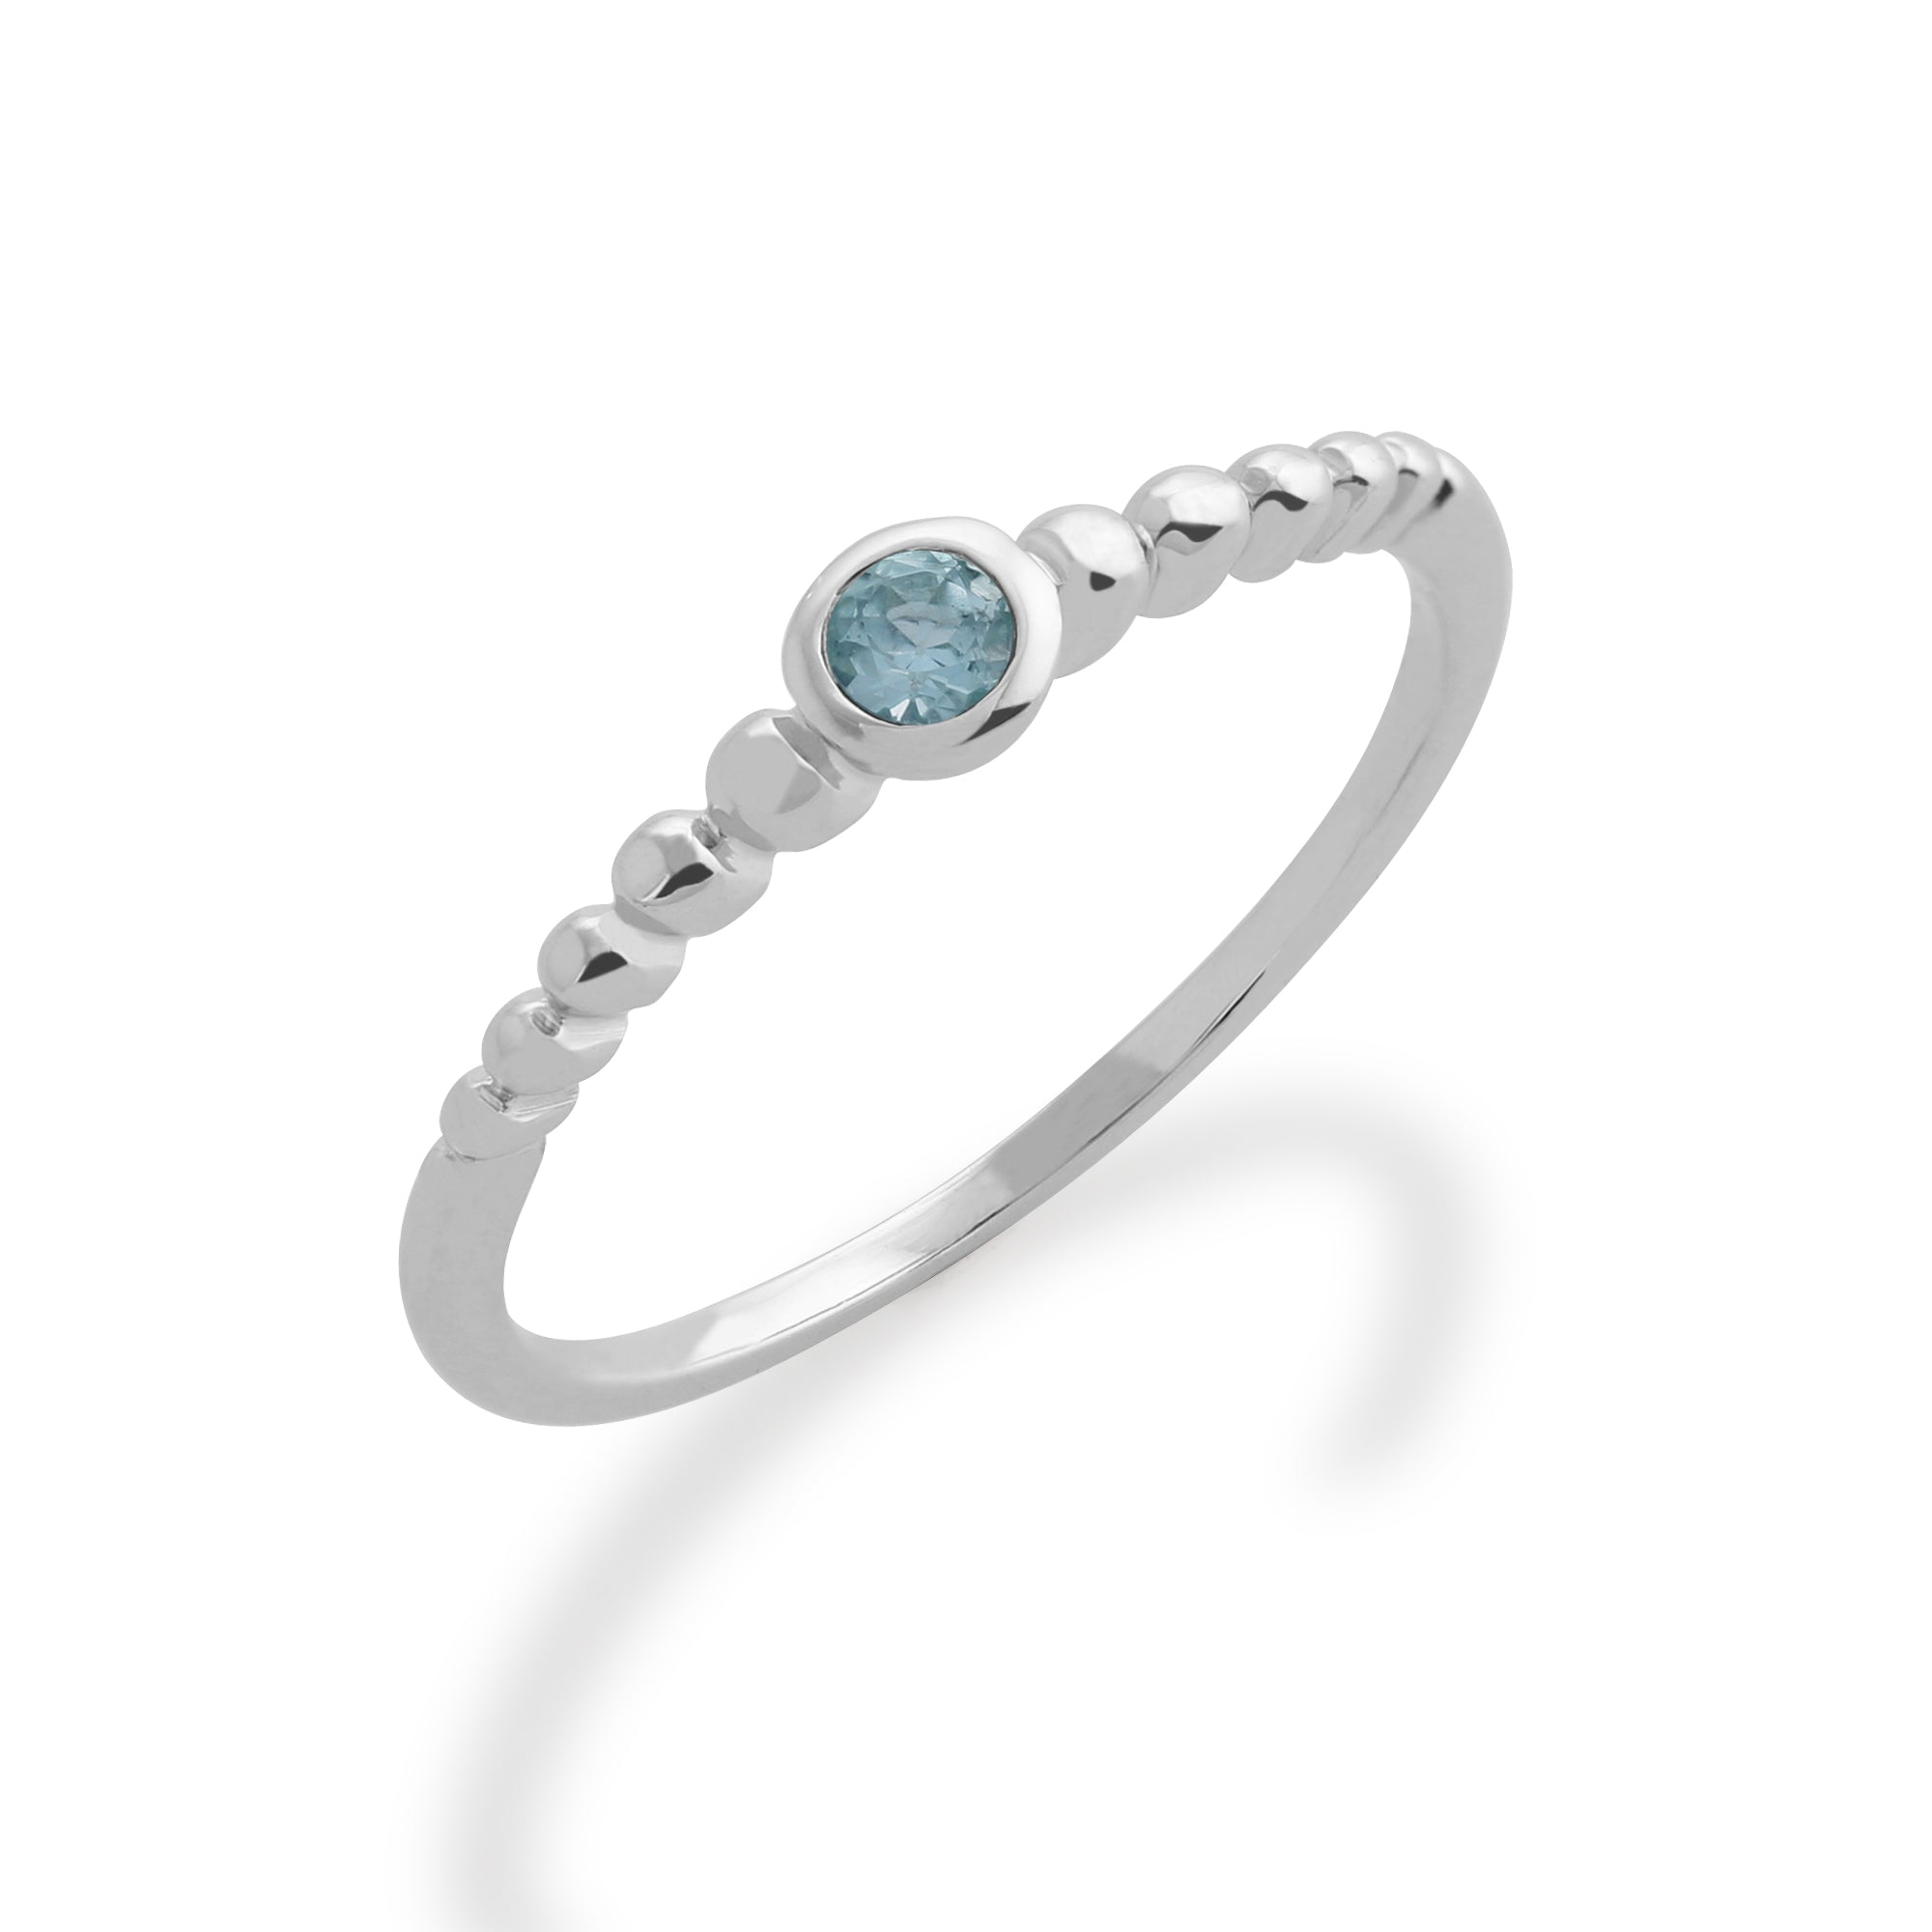 P Sterling Silver Royal Cluster Ring created Blue Aquamarine /& Diamond Size J